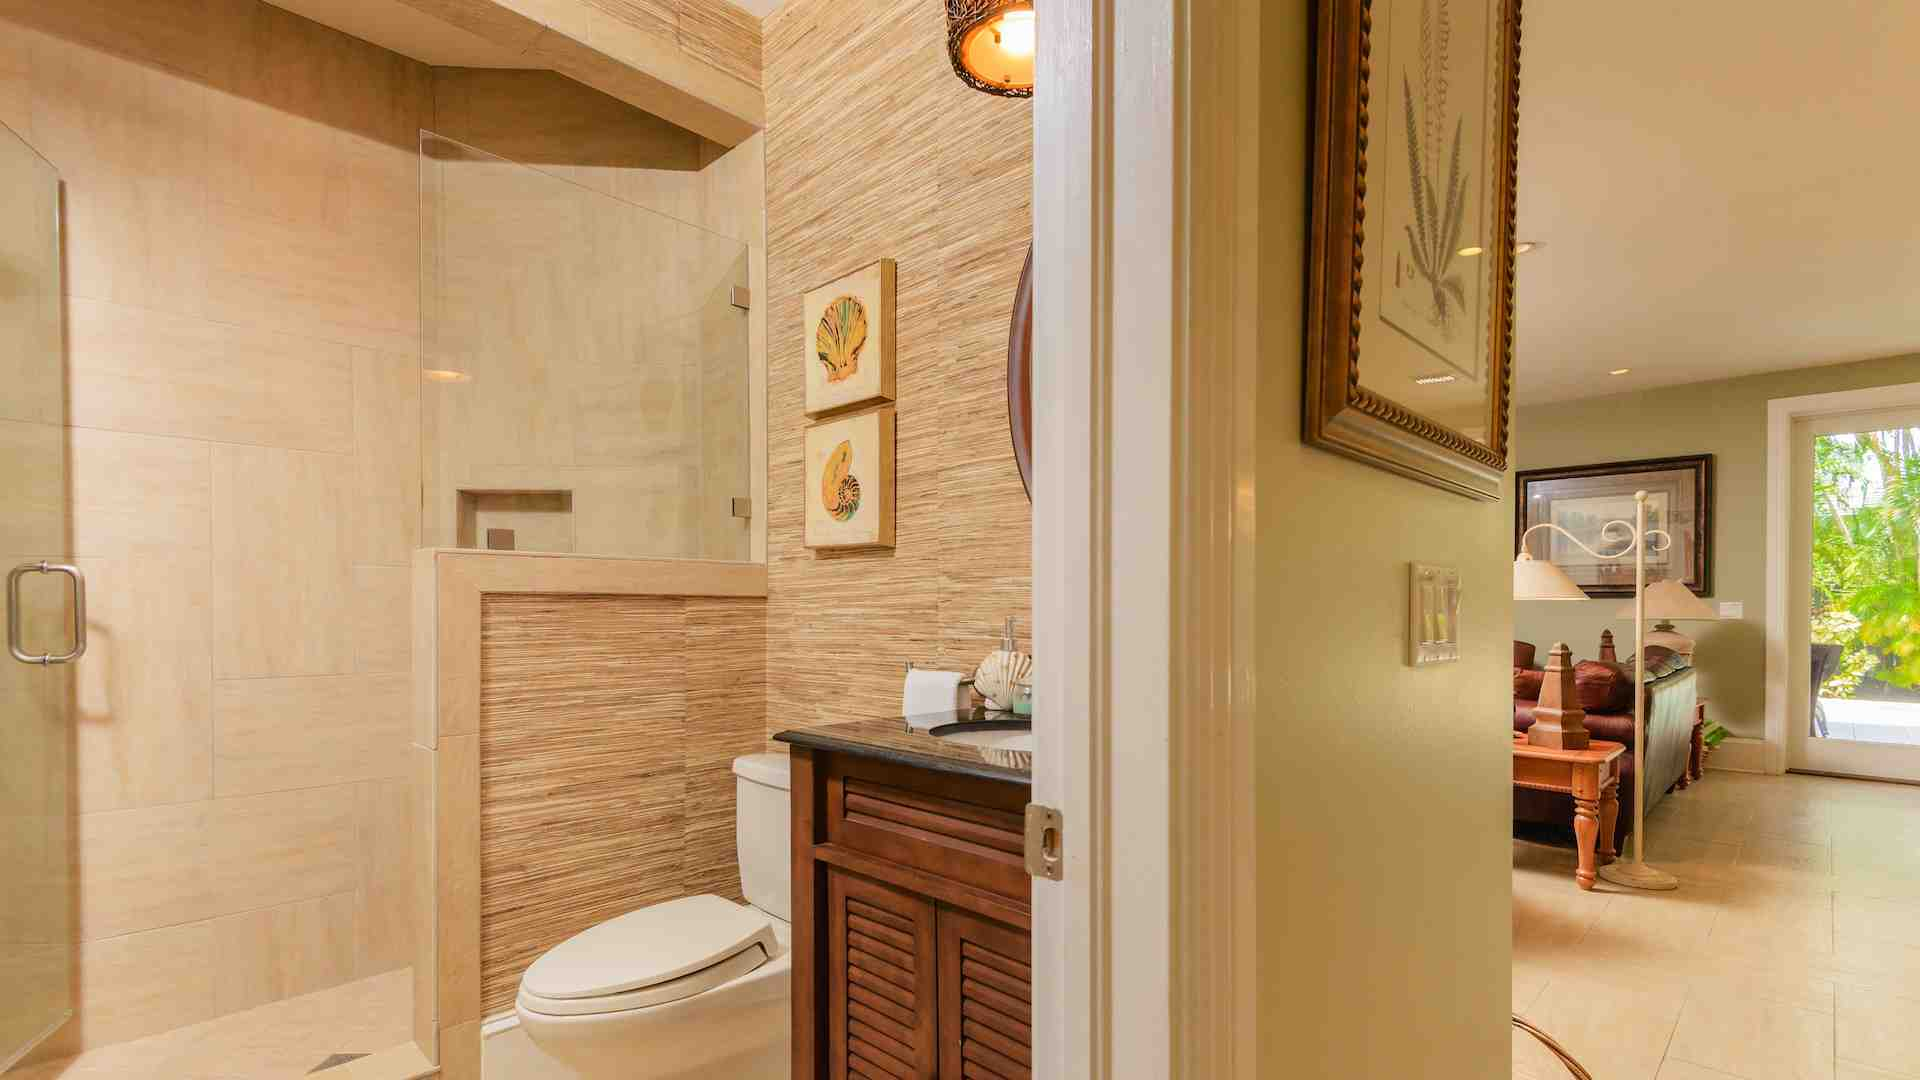 The downstairs bath has a glass shower for rinsing off after the beach or pool...